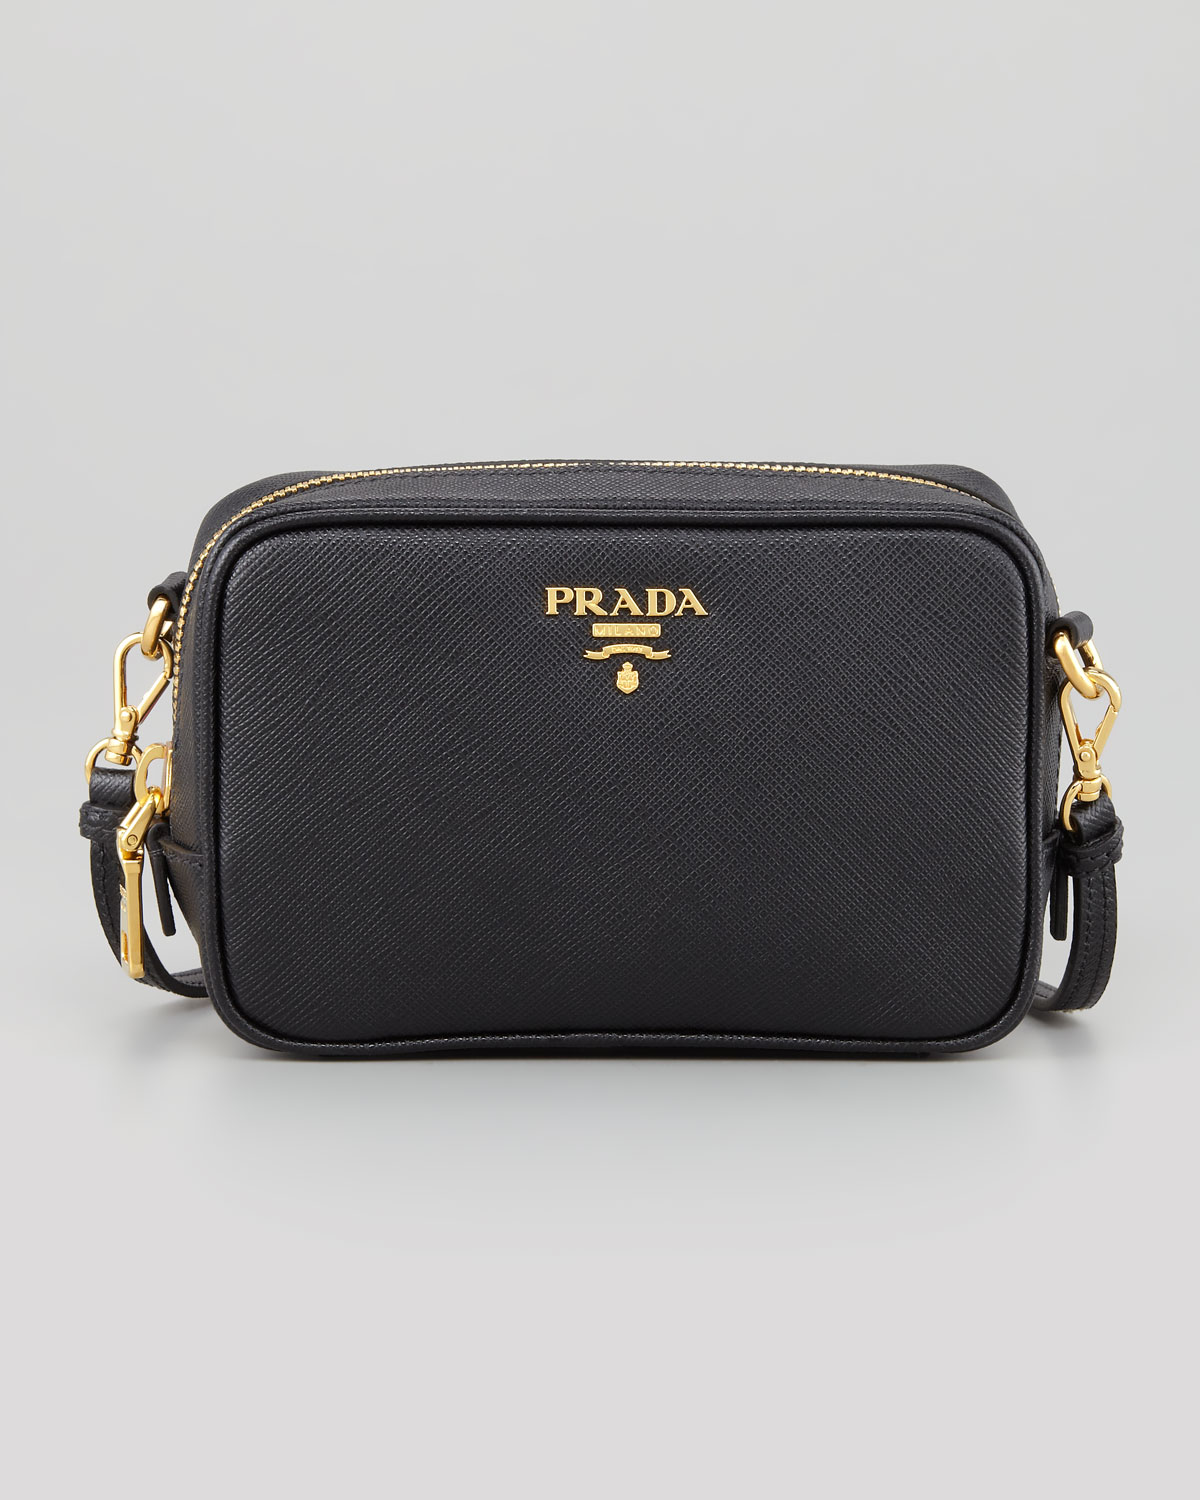 Prada Saffiano Mini Zip Crossbody Bag in Black - Save 19% | Lyst